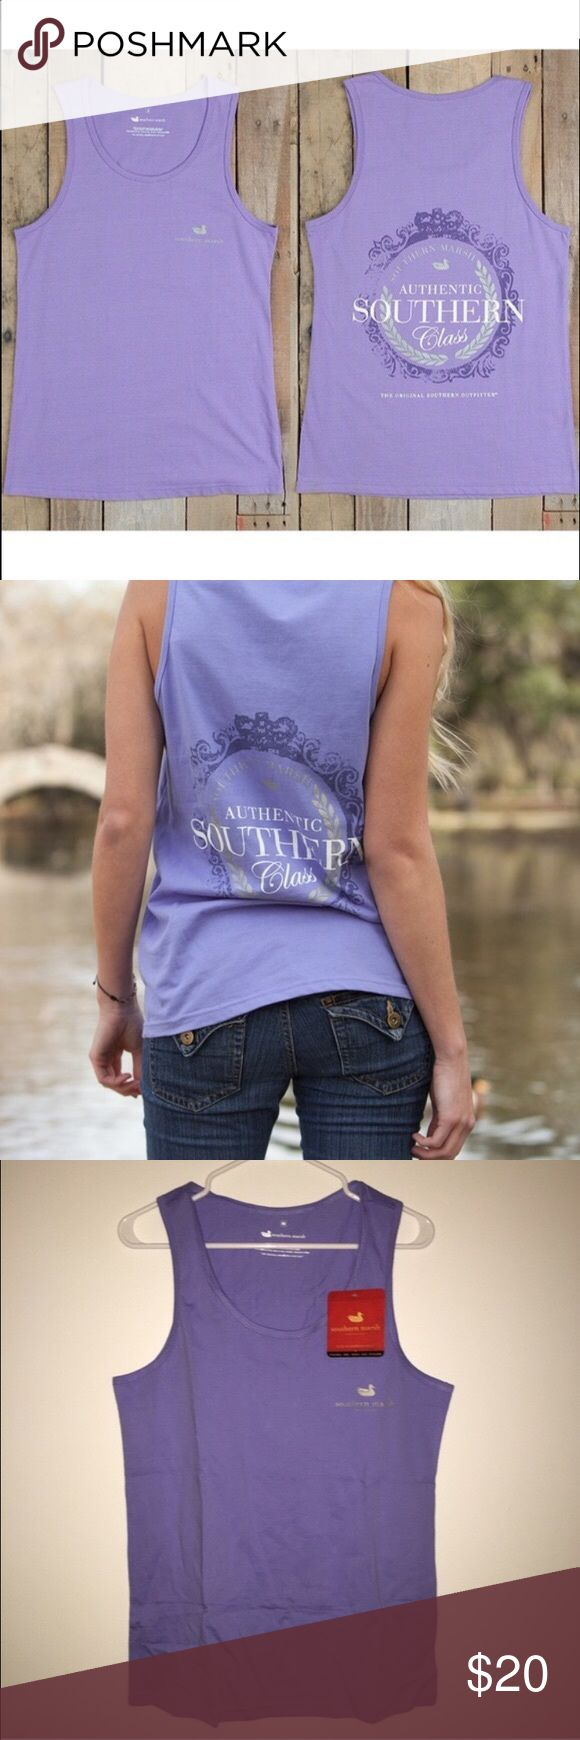 NWT Southern Marsh Southern Class Tank Purple Southern Marsh's most popular shirt, now with a little less fabric and a lot more skin! Featuring the Southern Marsh Authentic Southern Class on the back, and the Authenticlogo on the front! The SOUTHERN MARSH Southern Classmakes a great addition to your wardrobe.- 100% Lightweight Cotton - Ultra Soft Spun Fabric - Full Color - Garment Washed - NEVER WORN OR WASHED - BRAND NEW WITH TAGS - SIZE MED Southern Marsh Tops Tank Tops